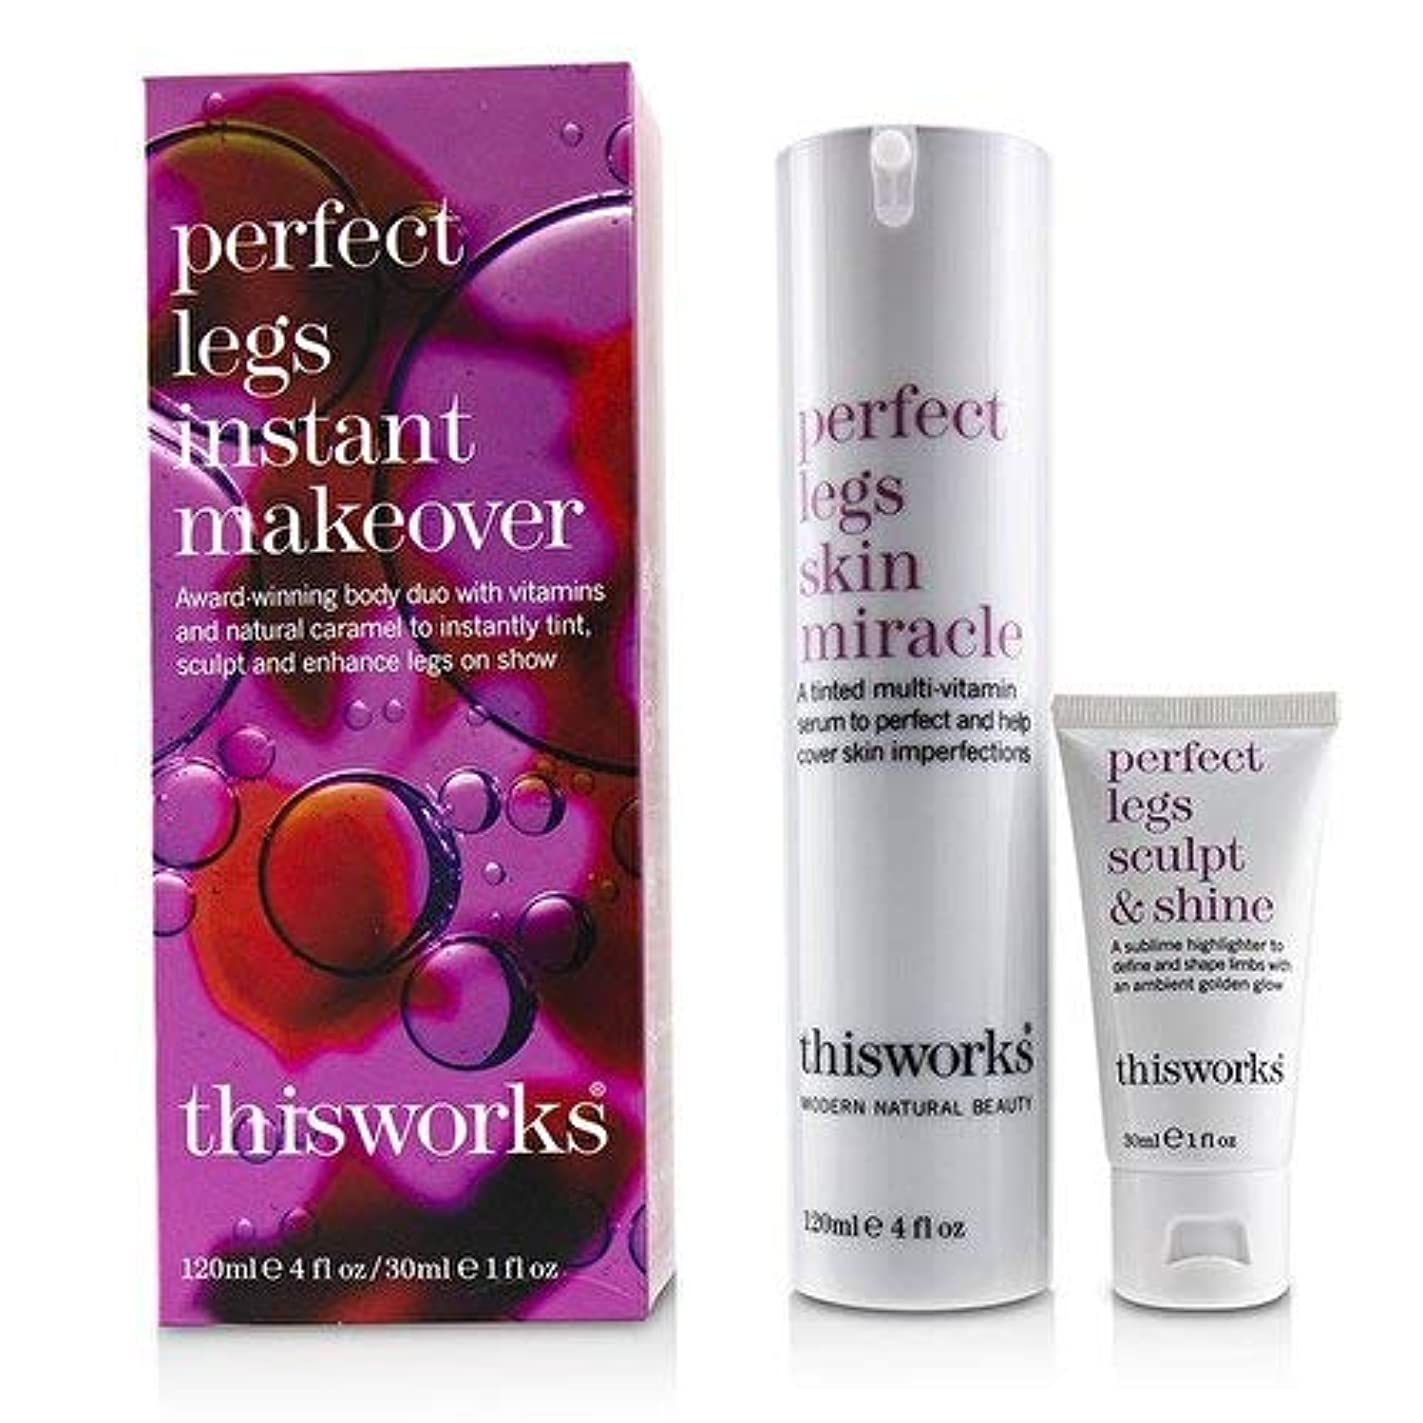 前提条件ブッシュ成人期ThisWorks Perfect Legs Instant Makeover Kit: Perfect Legs Skin Miracle Serum 120ml + Perfect Legs Sculpt & Shine 30ml 2pcs並行輸入品